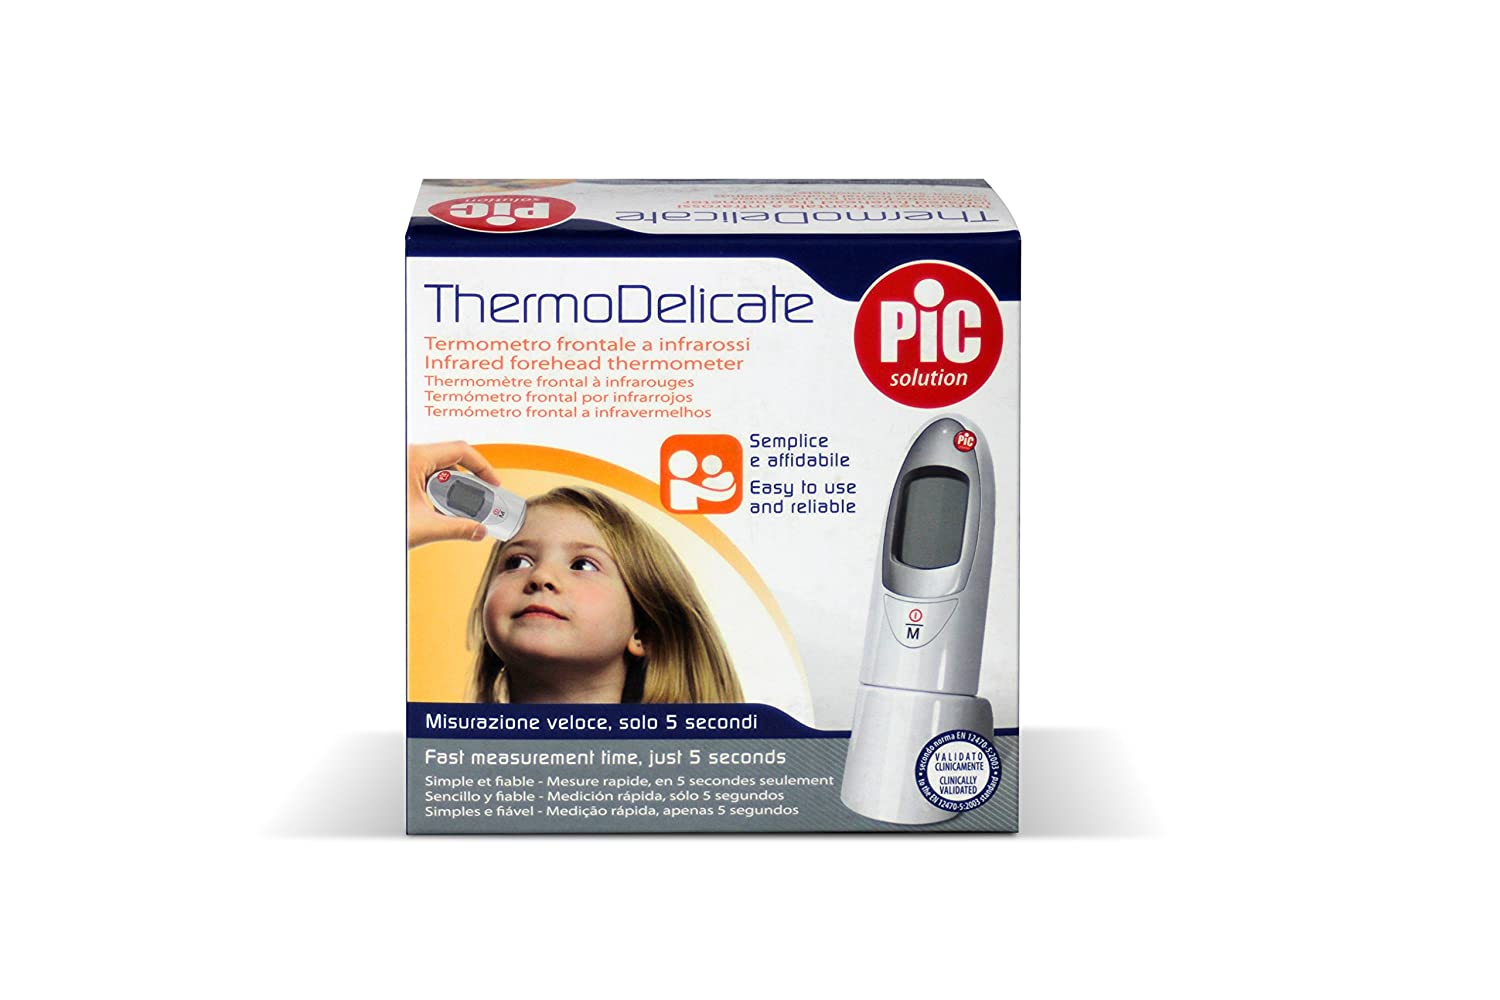 Amazon.com: Thermo Delicate Infrared Forehead Thermometer PIC: Health & Personal Care